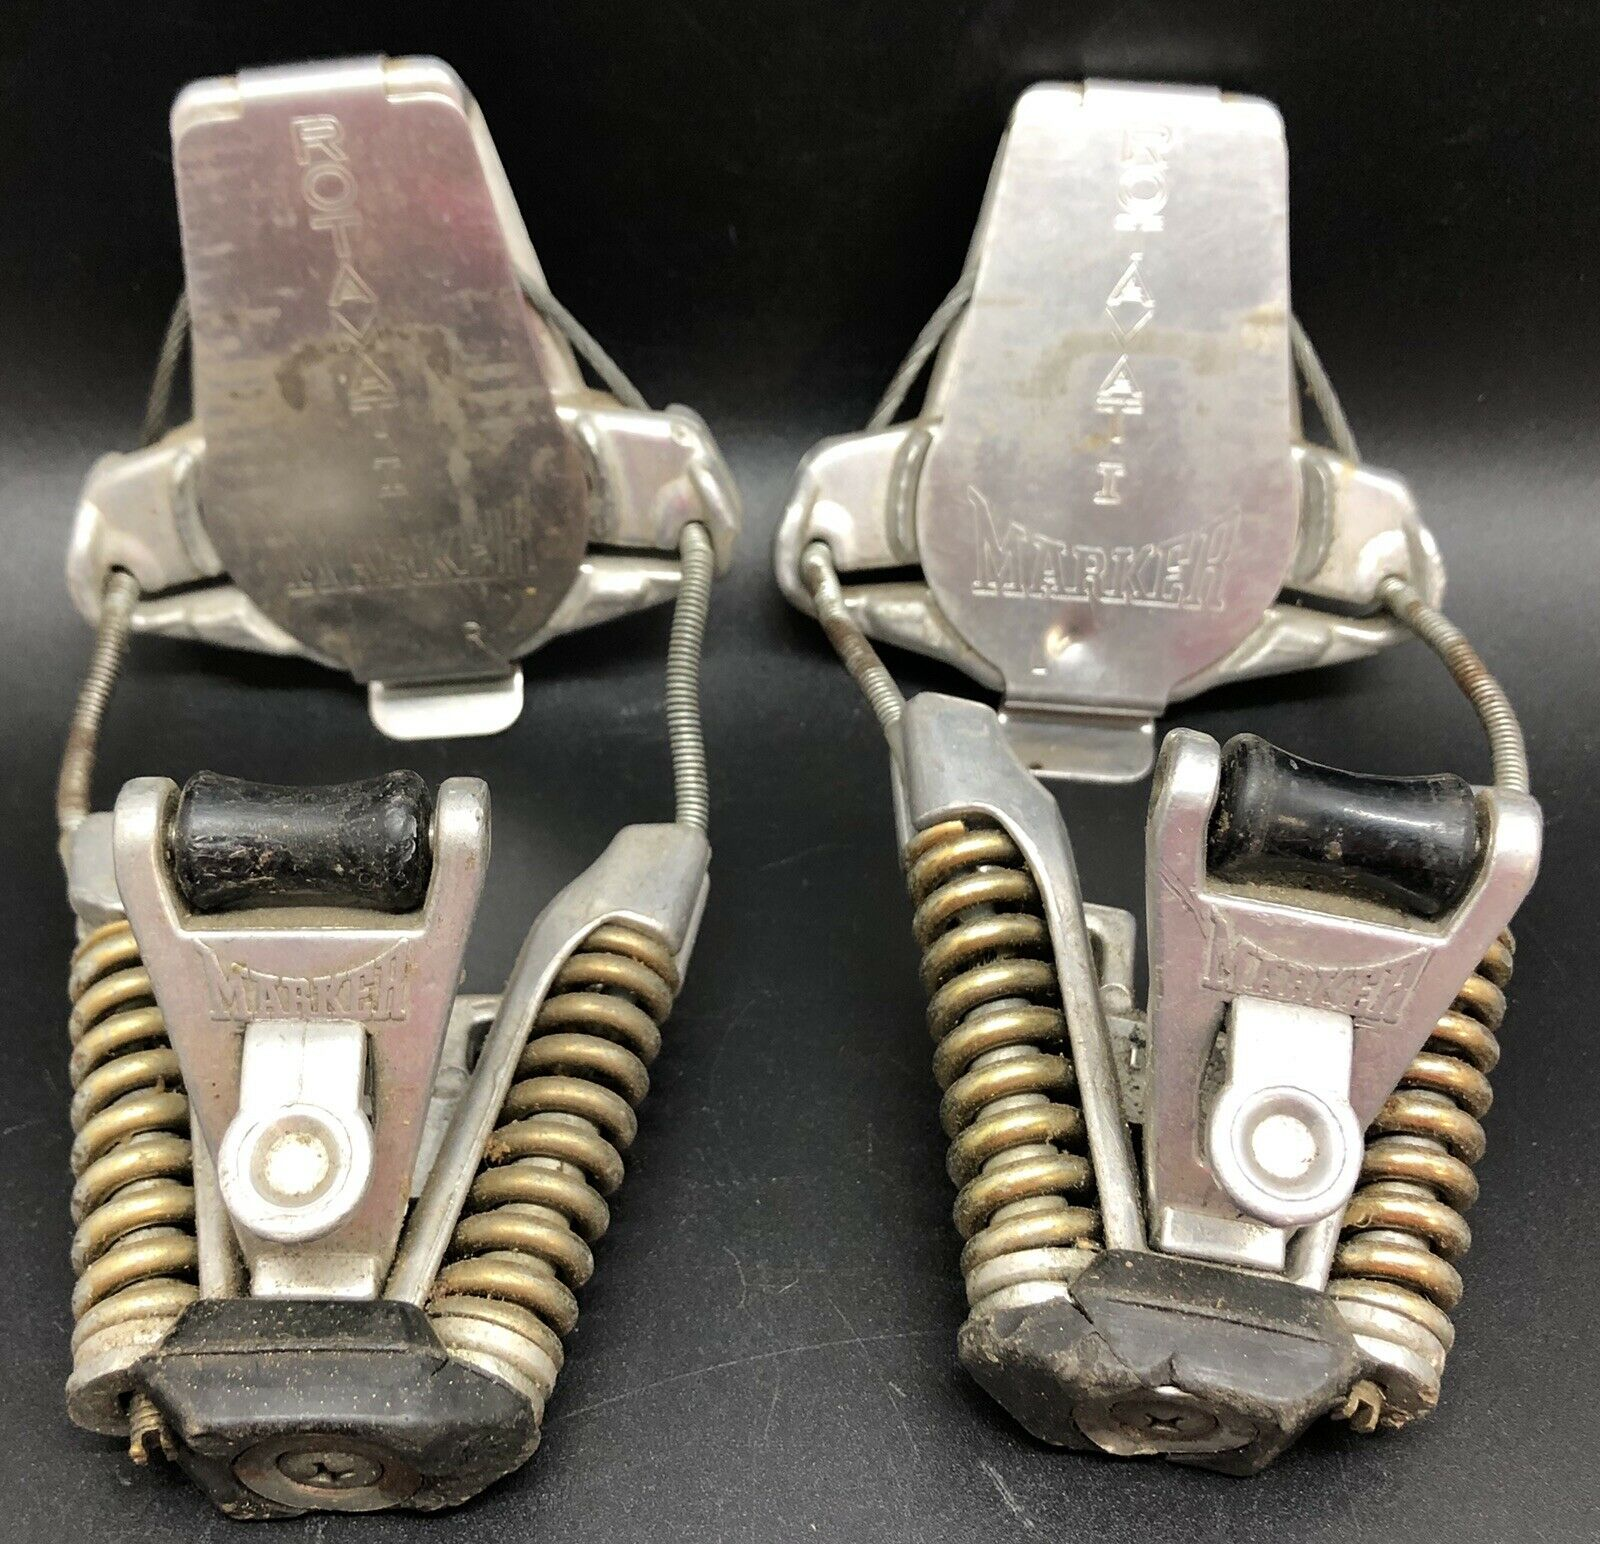 Vintage Pair of German redAMAT I Marker Ski  Bindings (RF942)  selling well all over the world